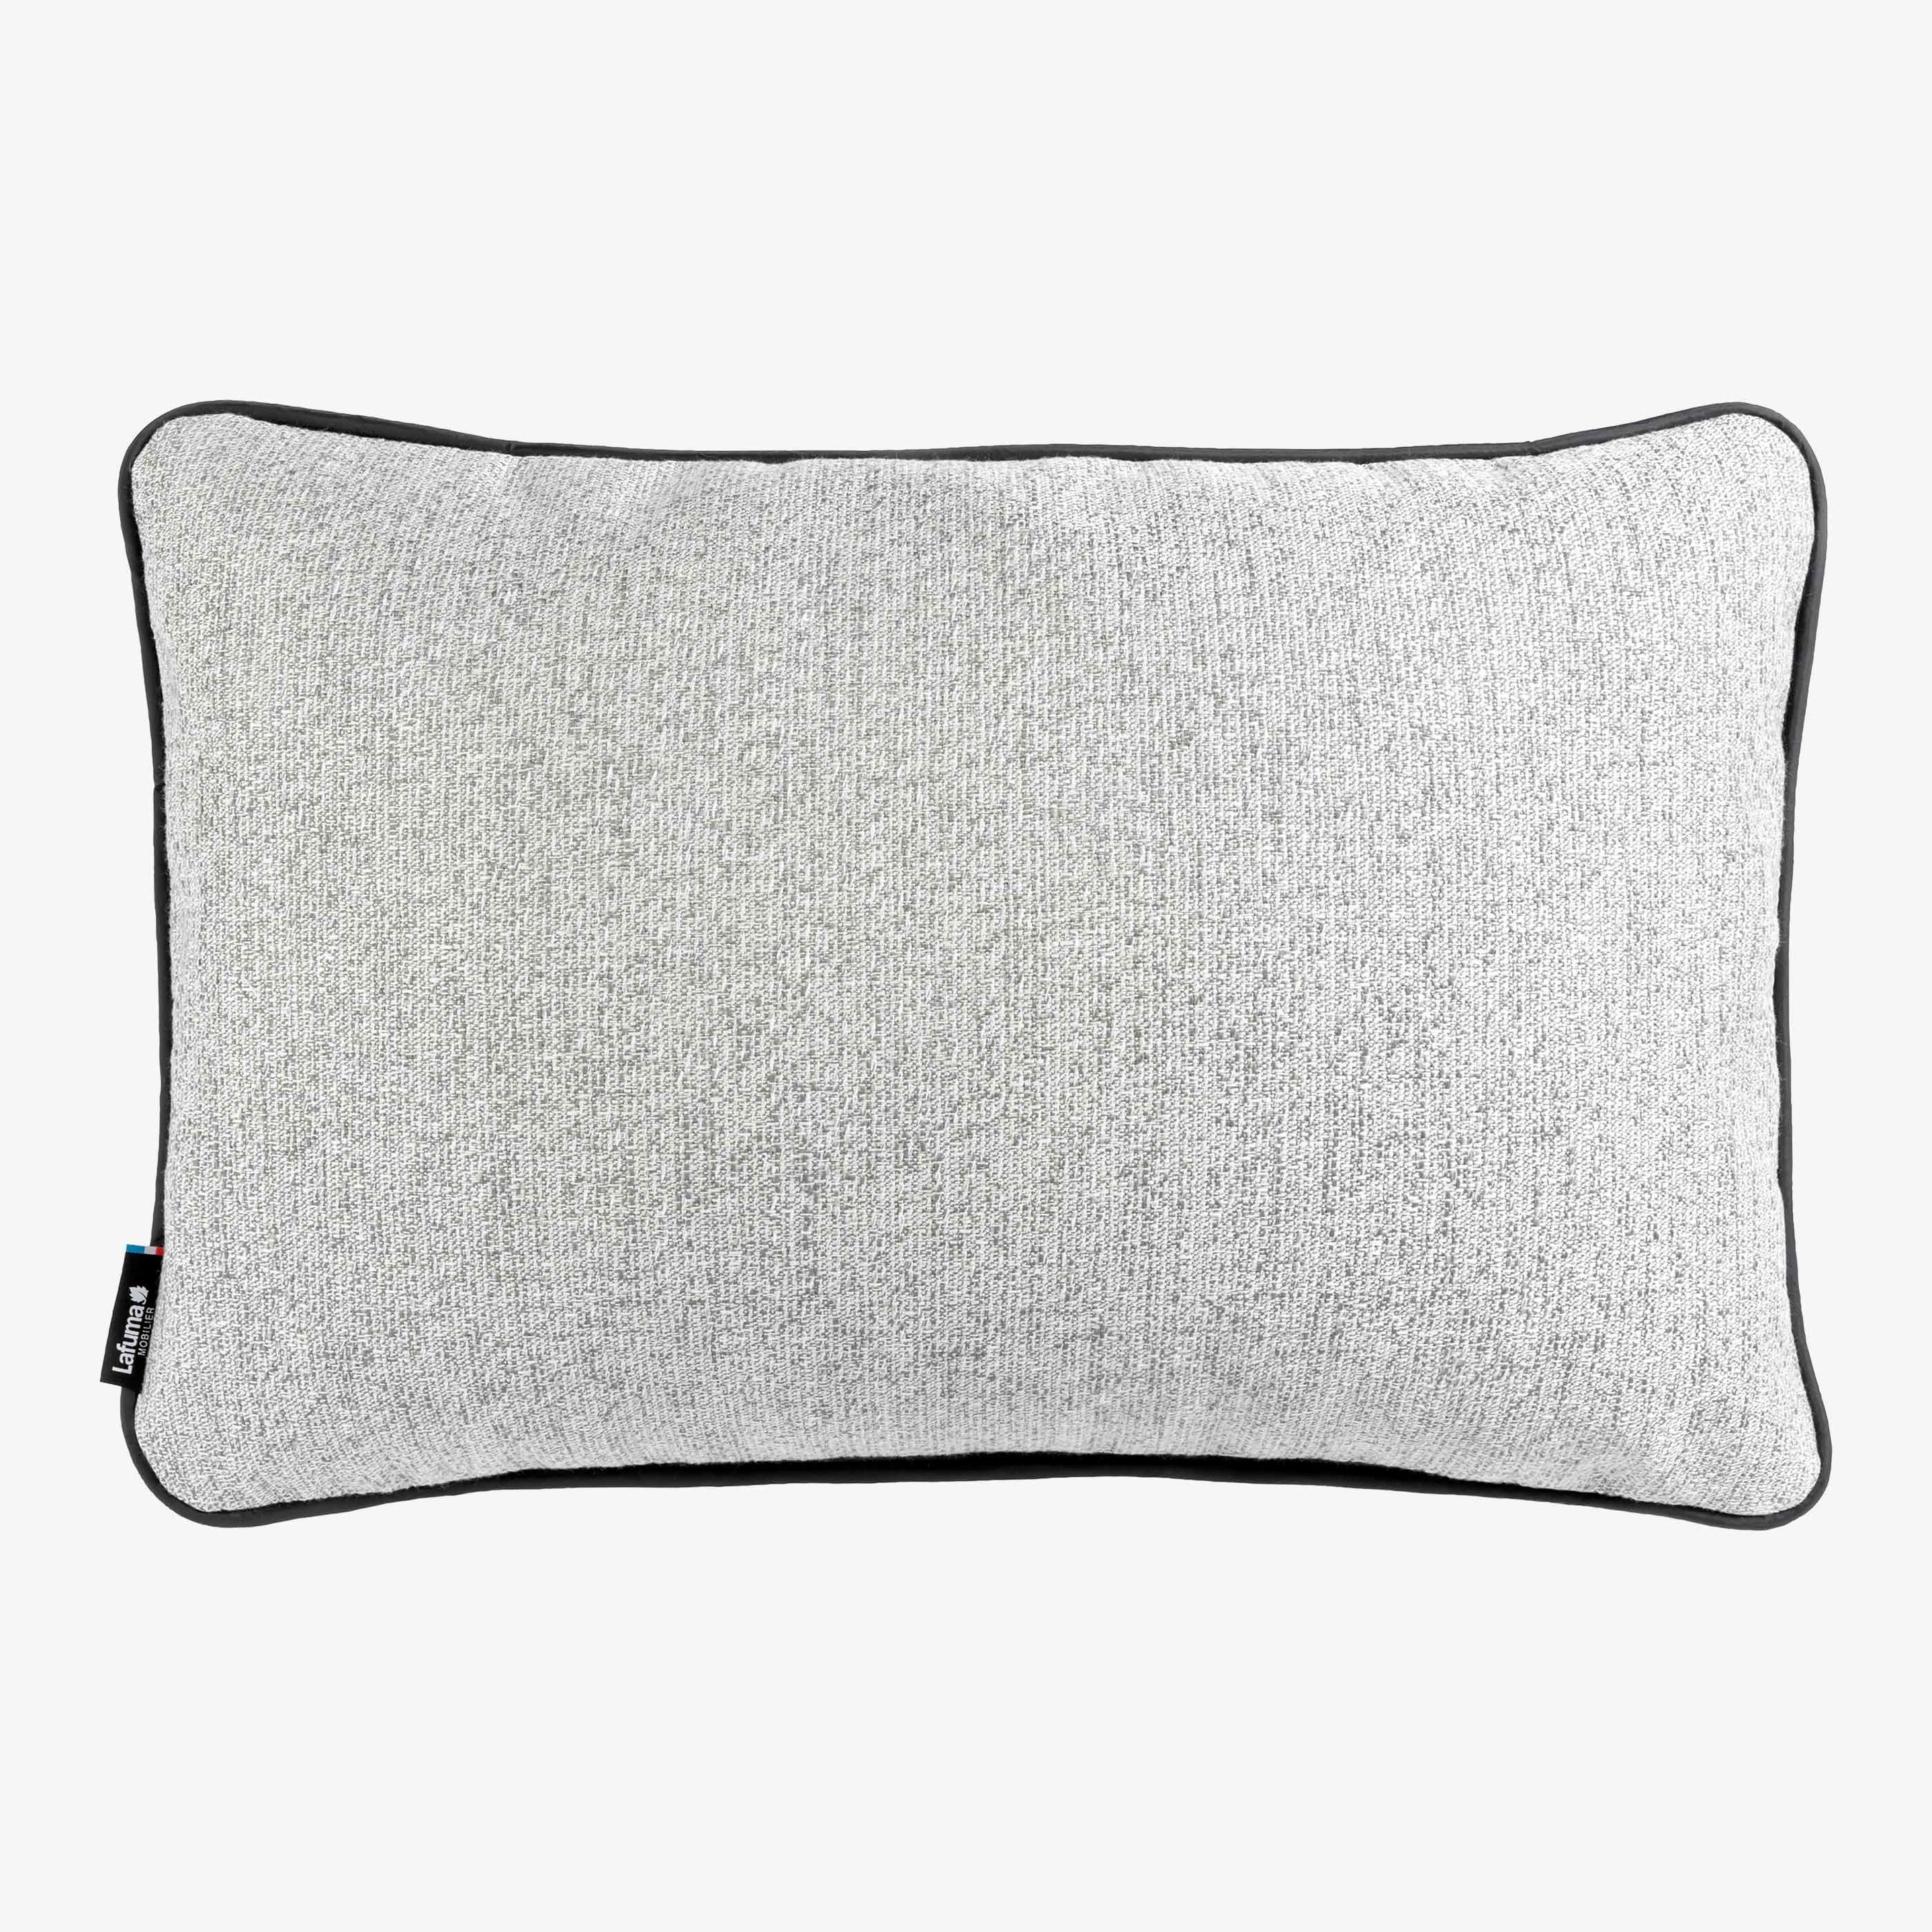 EROME RECTANGULAR CUSHION